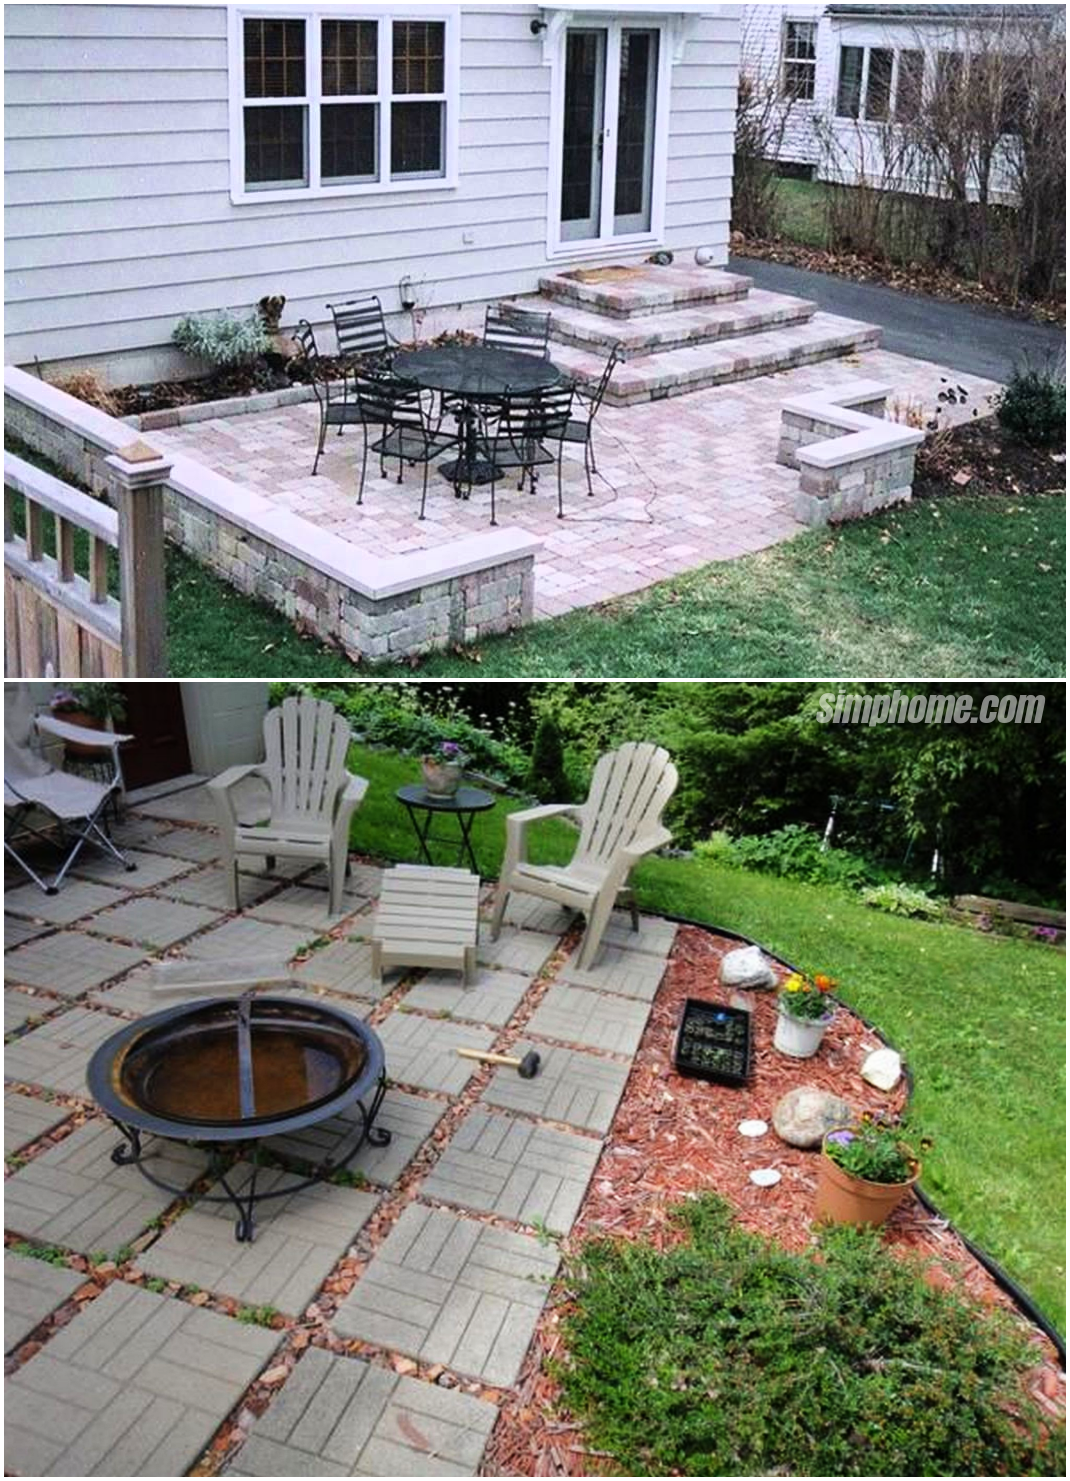 25.SIMPHOME.COM Genius Ideas How to Make Concrete Patio Ideas for Small Backyards